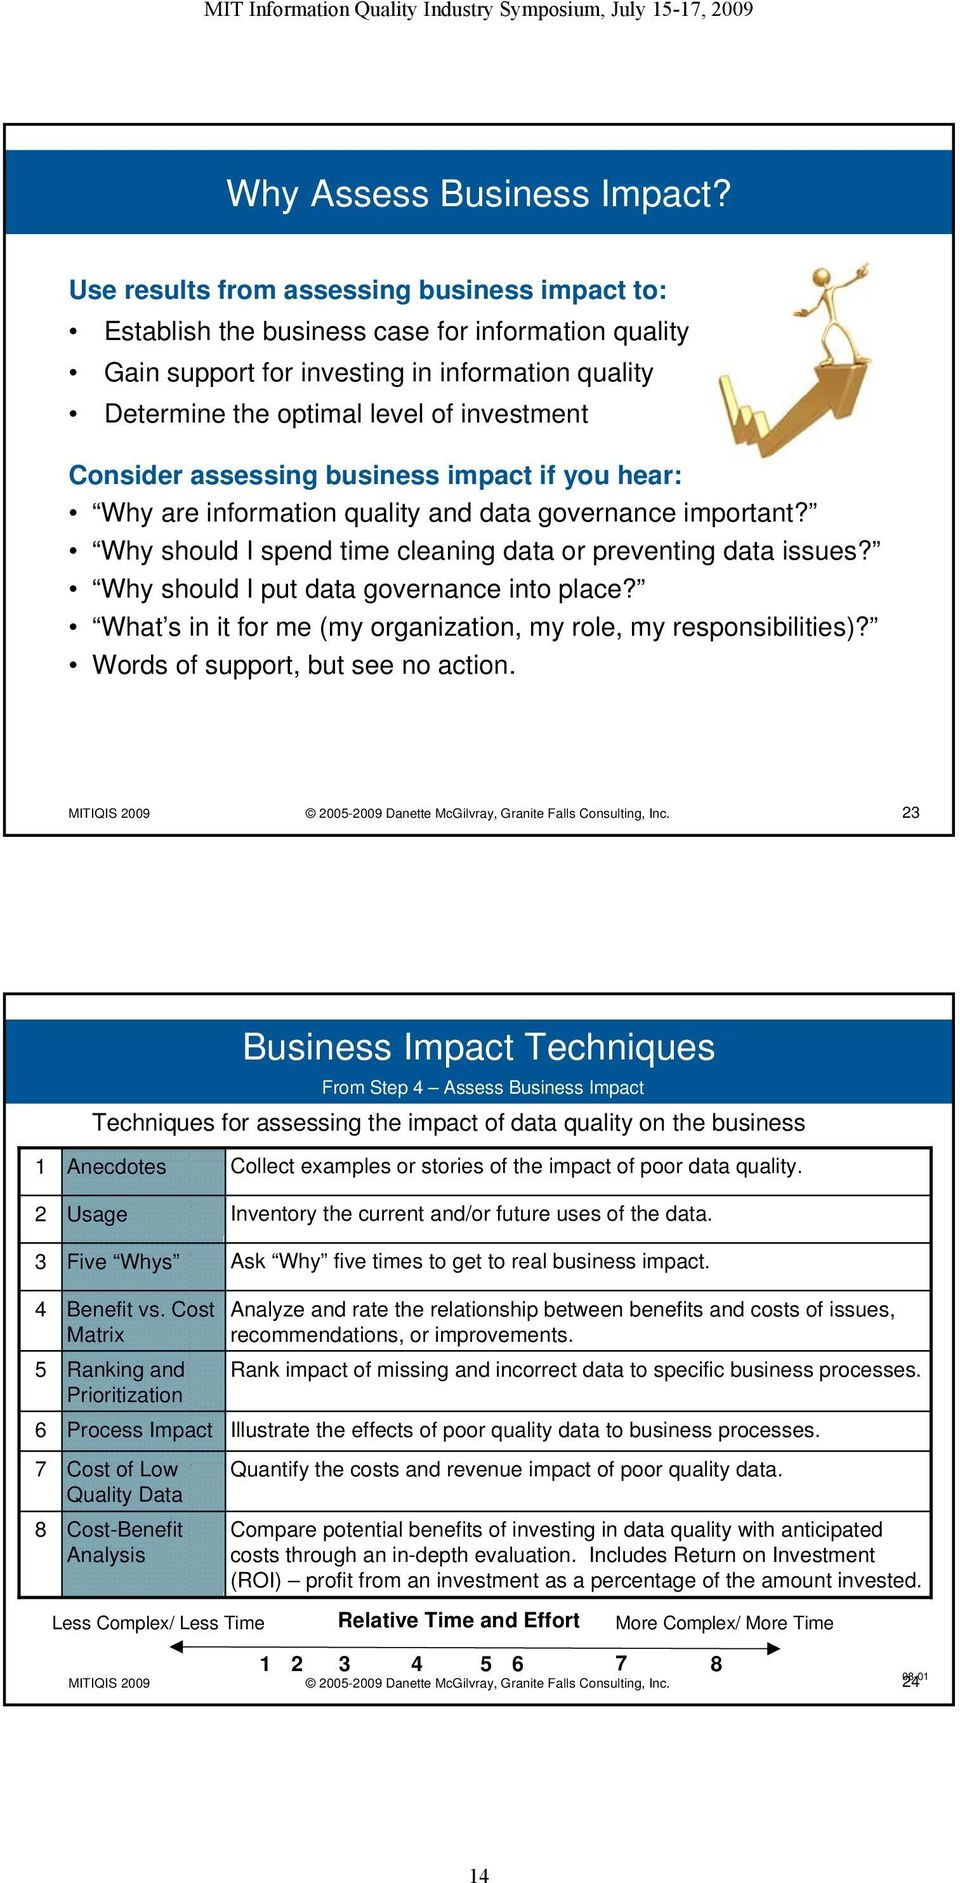 assessing business impact if you hear: Why are information quality and data governance important? Why should I spend time cleaning data or preventing data issues?